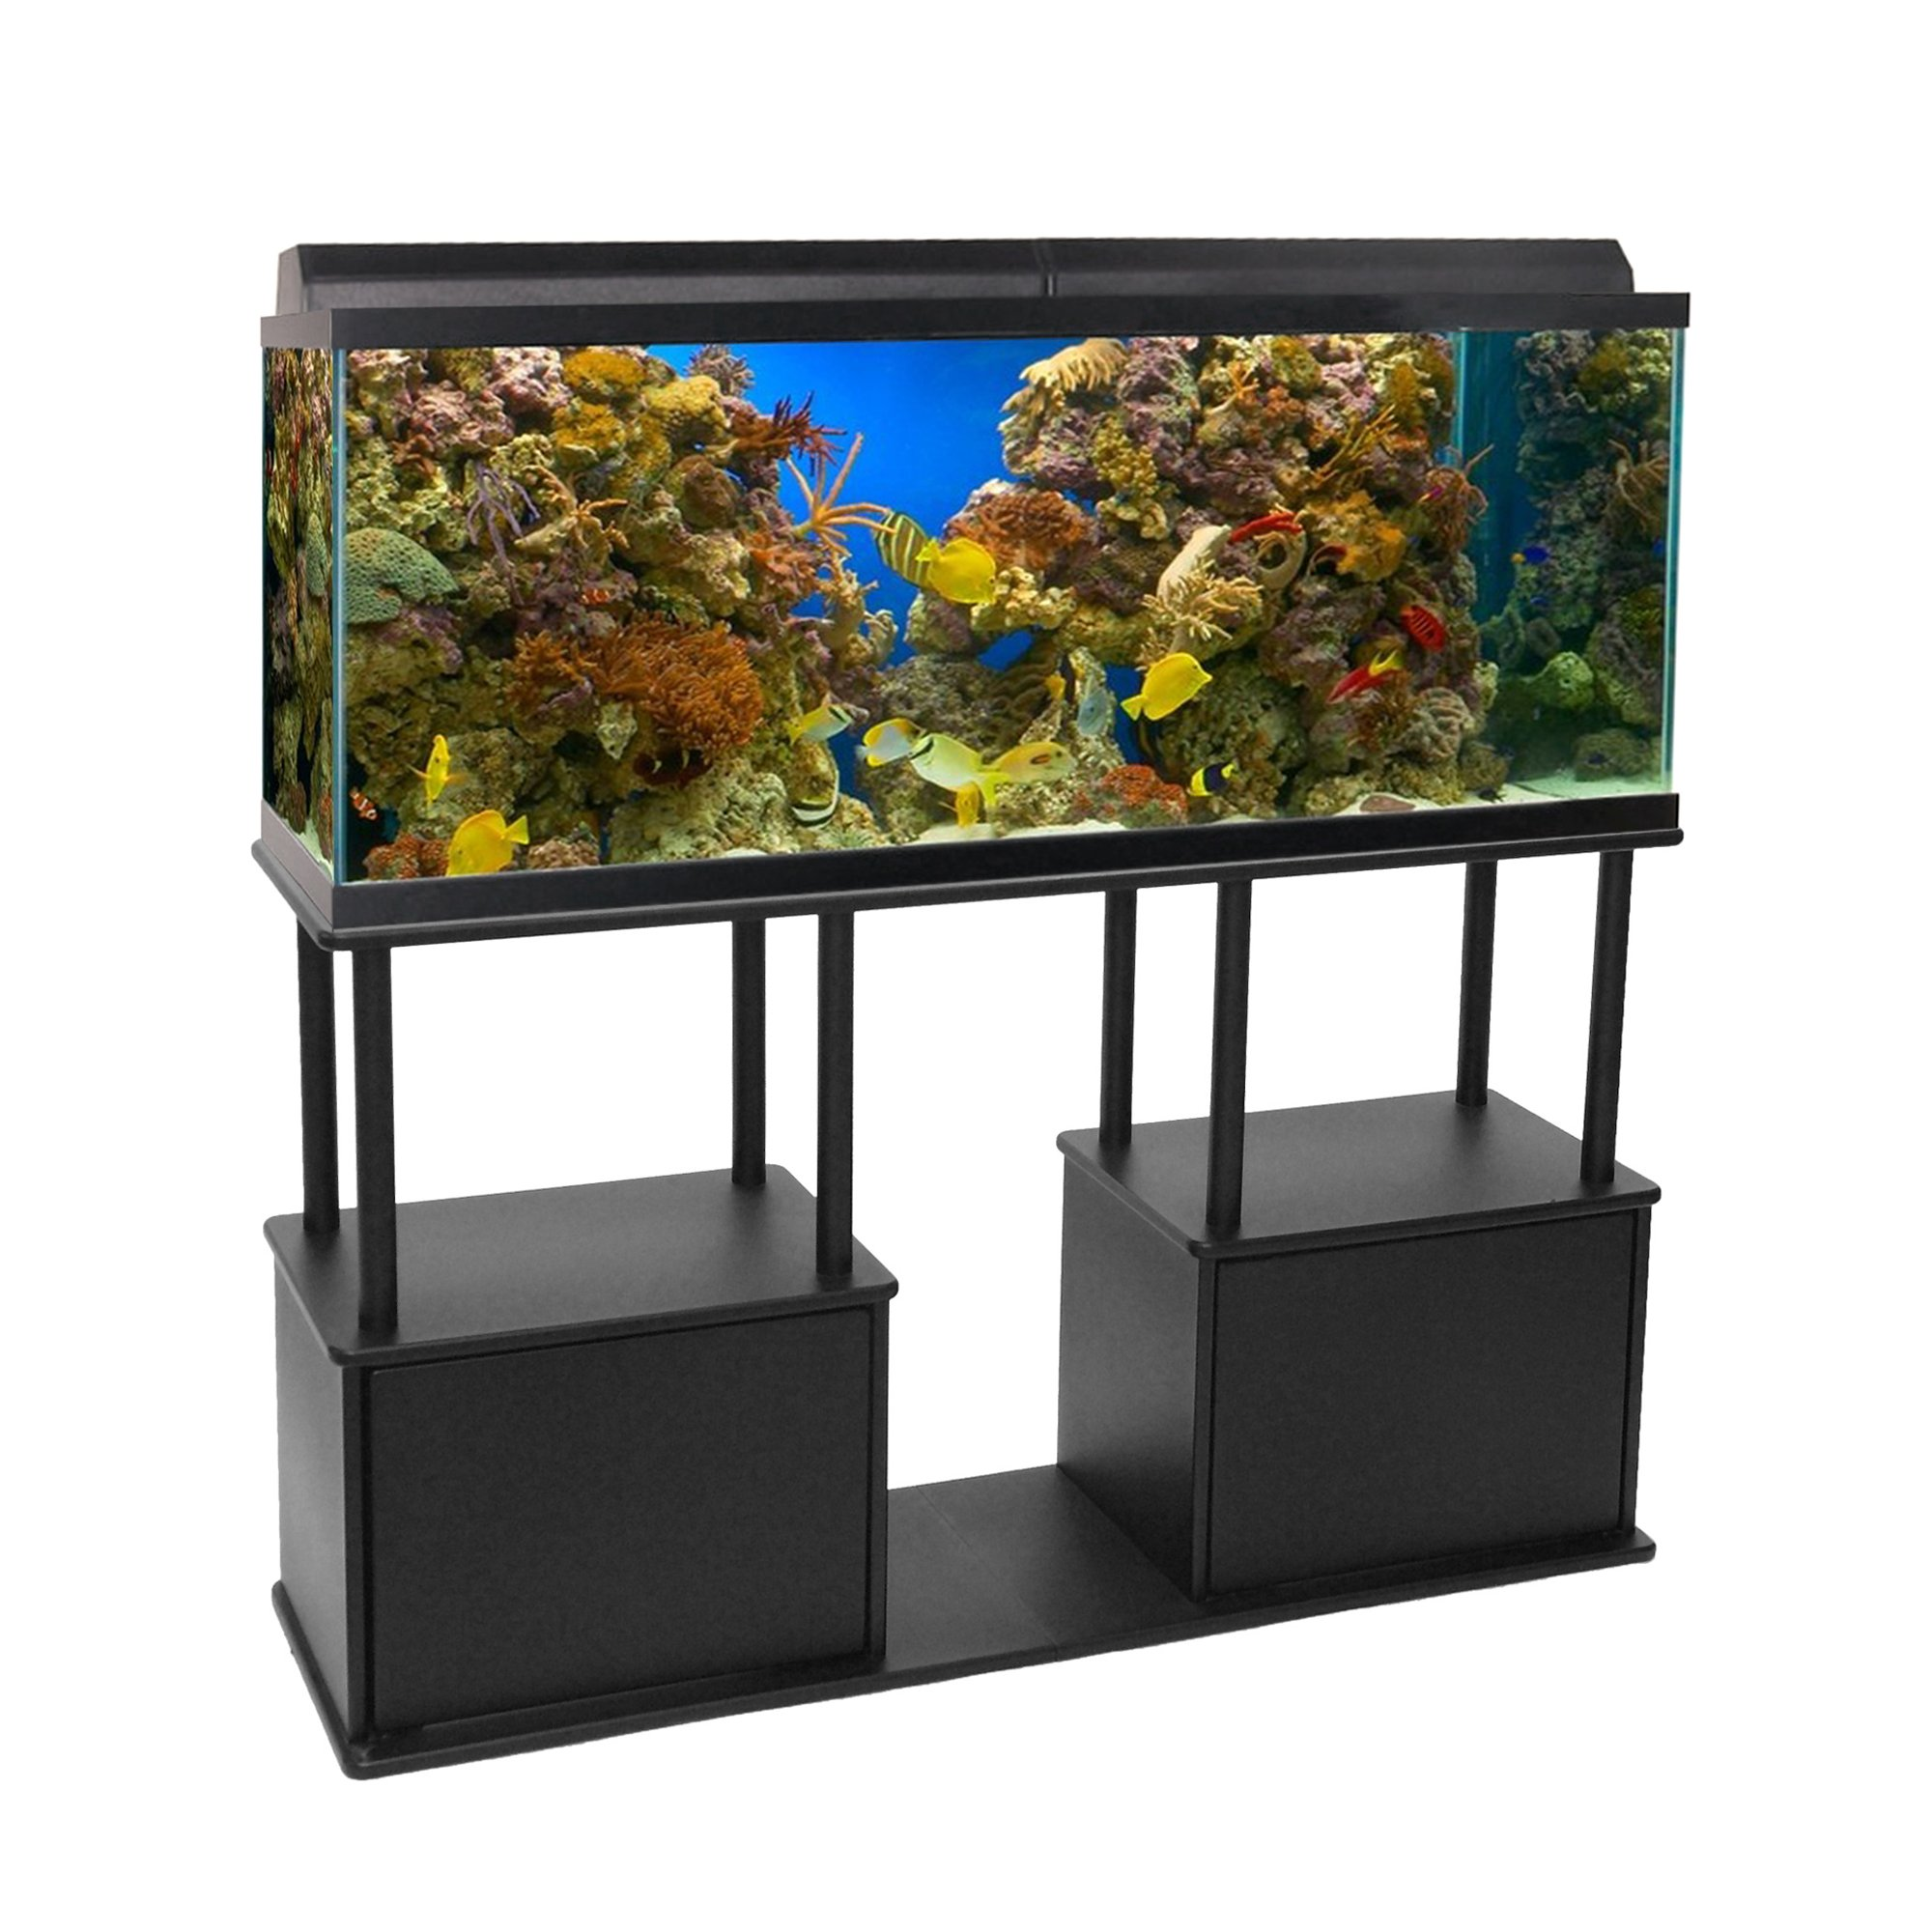 Aquatic fundamentals 55 gallon aquarium stand with shelf for 55 gal fish tank stand